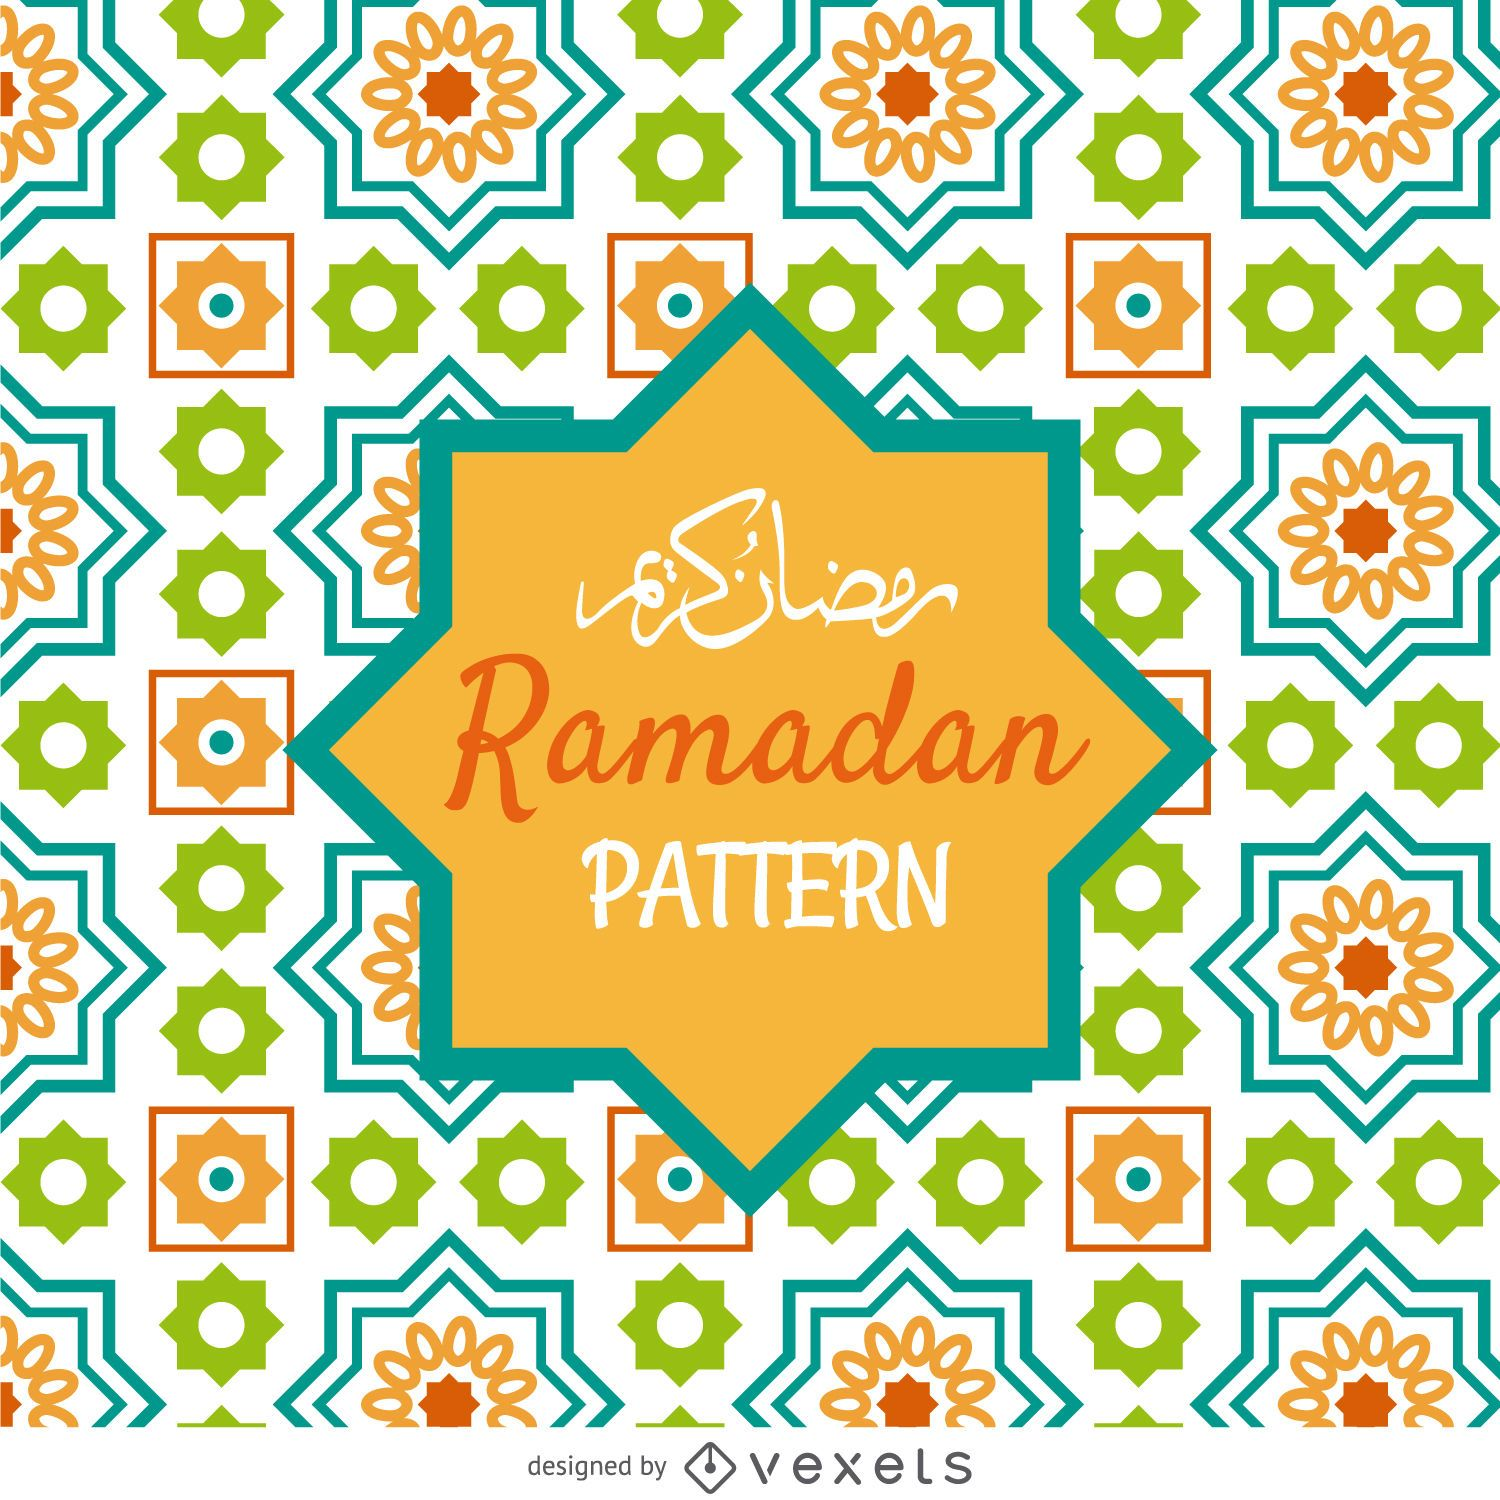 Ramadan Vector  for Ramadan Pattern Png  131fsj